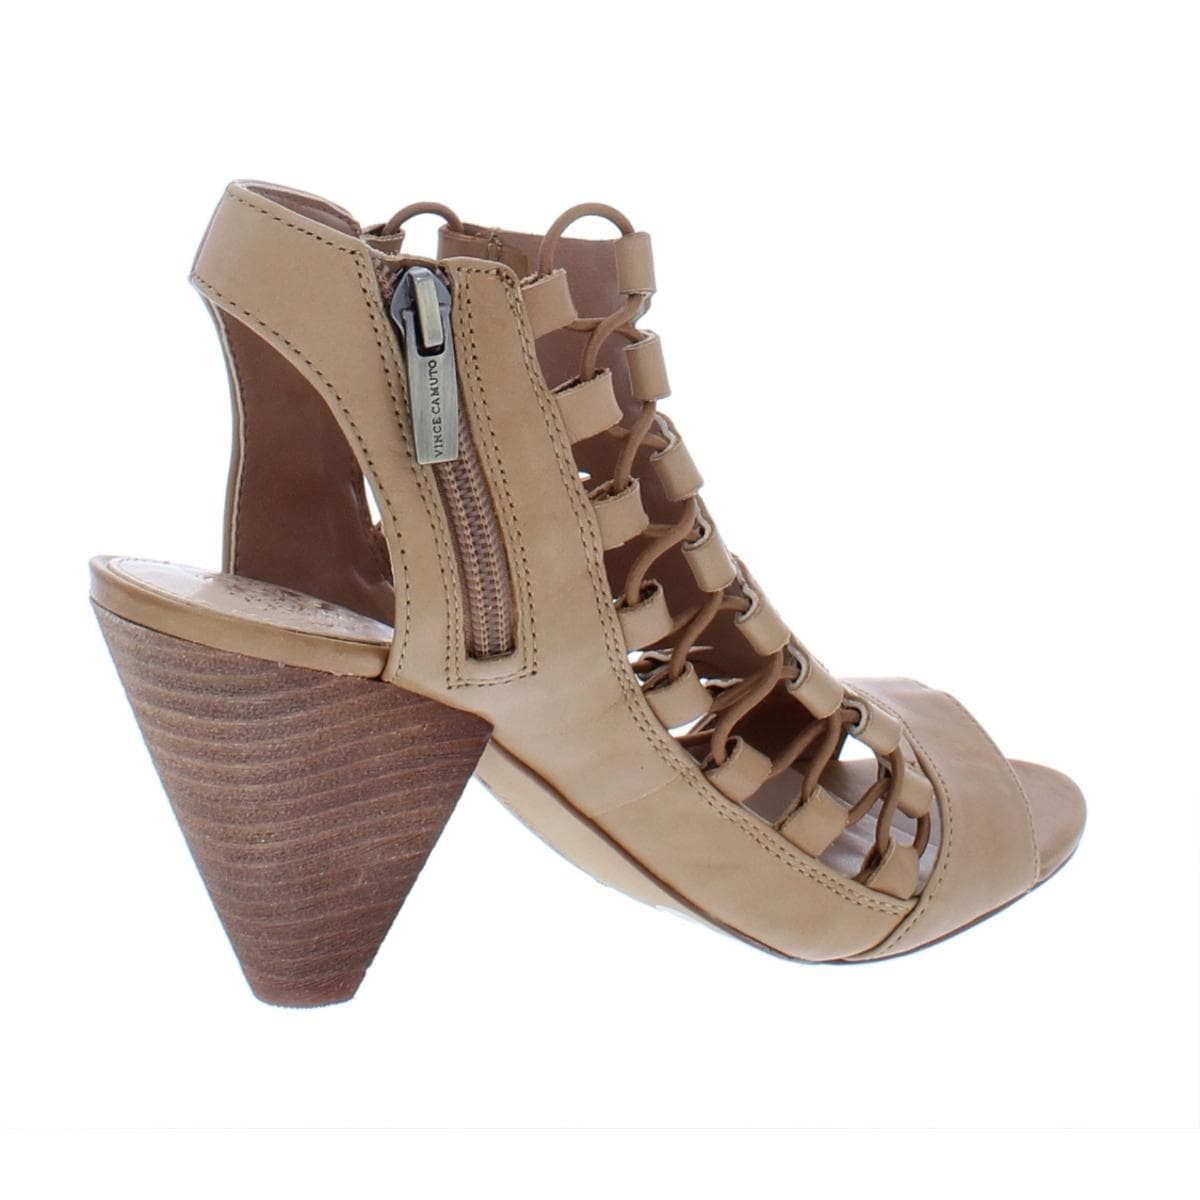 f01ea886526 Shop Vince Camuto Womens Eliaz Dress Sandals Leather Caged - Free Shipping  Today - Overstock - 25358413